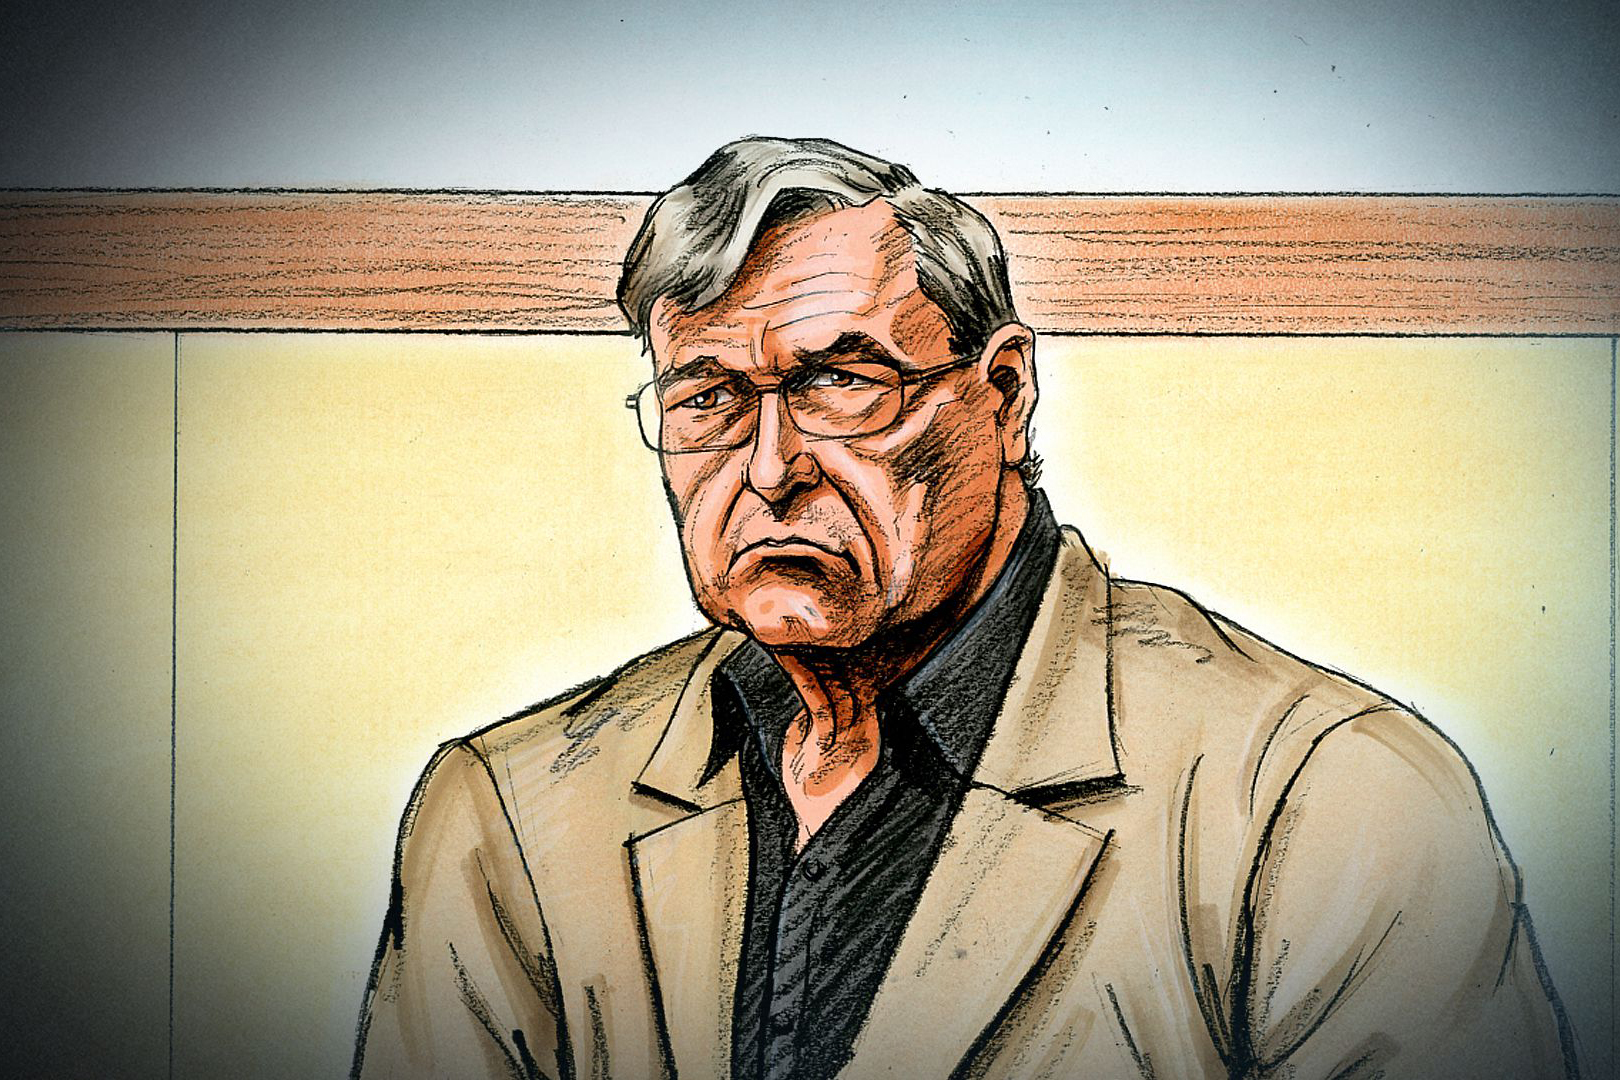 How Cardinal George Pell Became the Highest-Ranking Catholic Official to Be Convicted of Child Abuse